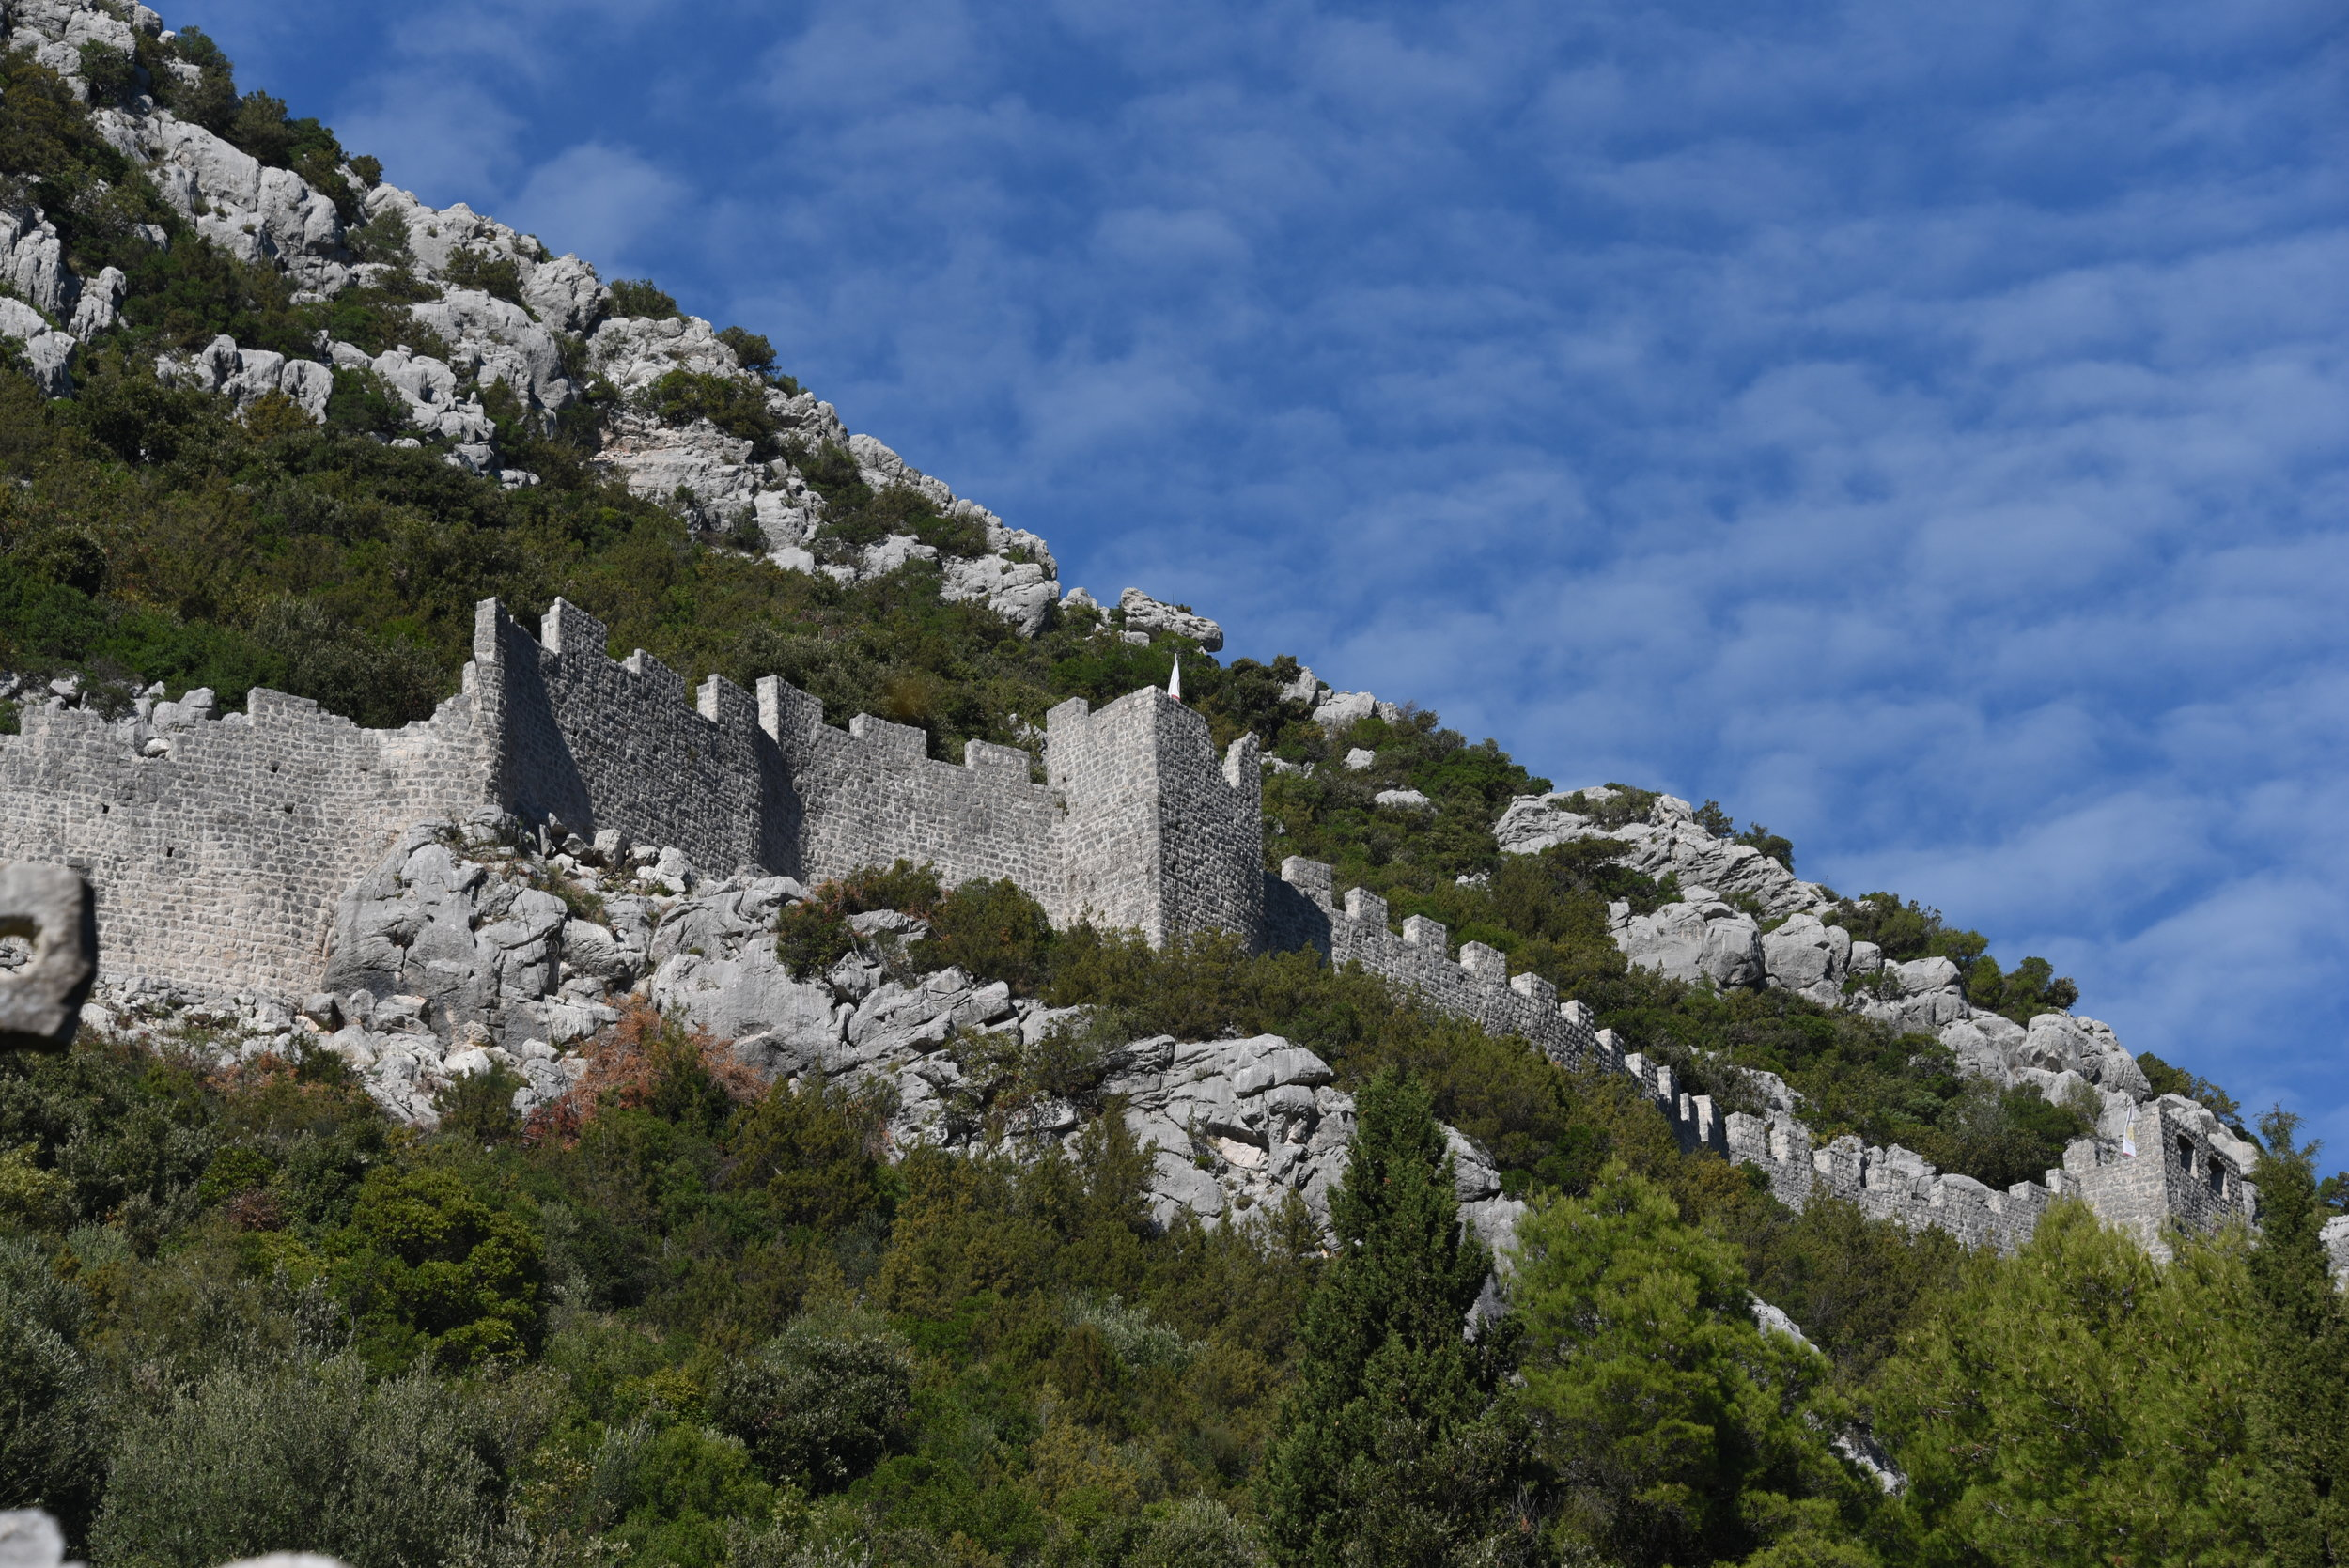 The walls in Ston.